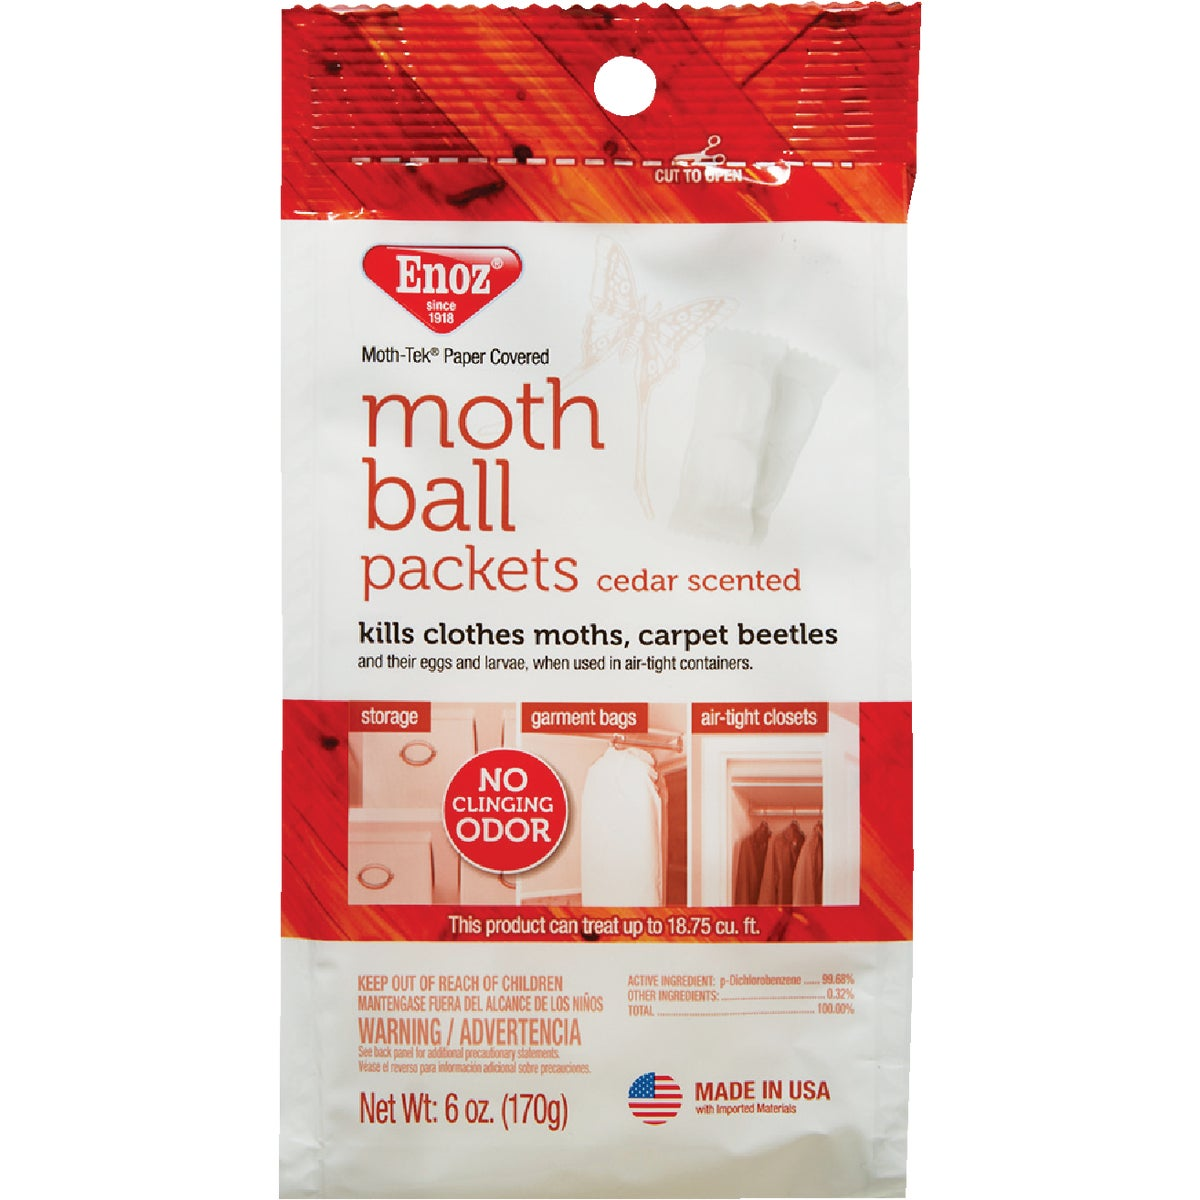 Enoz Moth Ball Packets - Ceder Scented